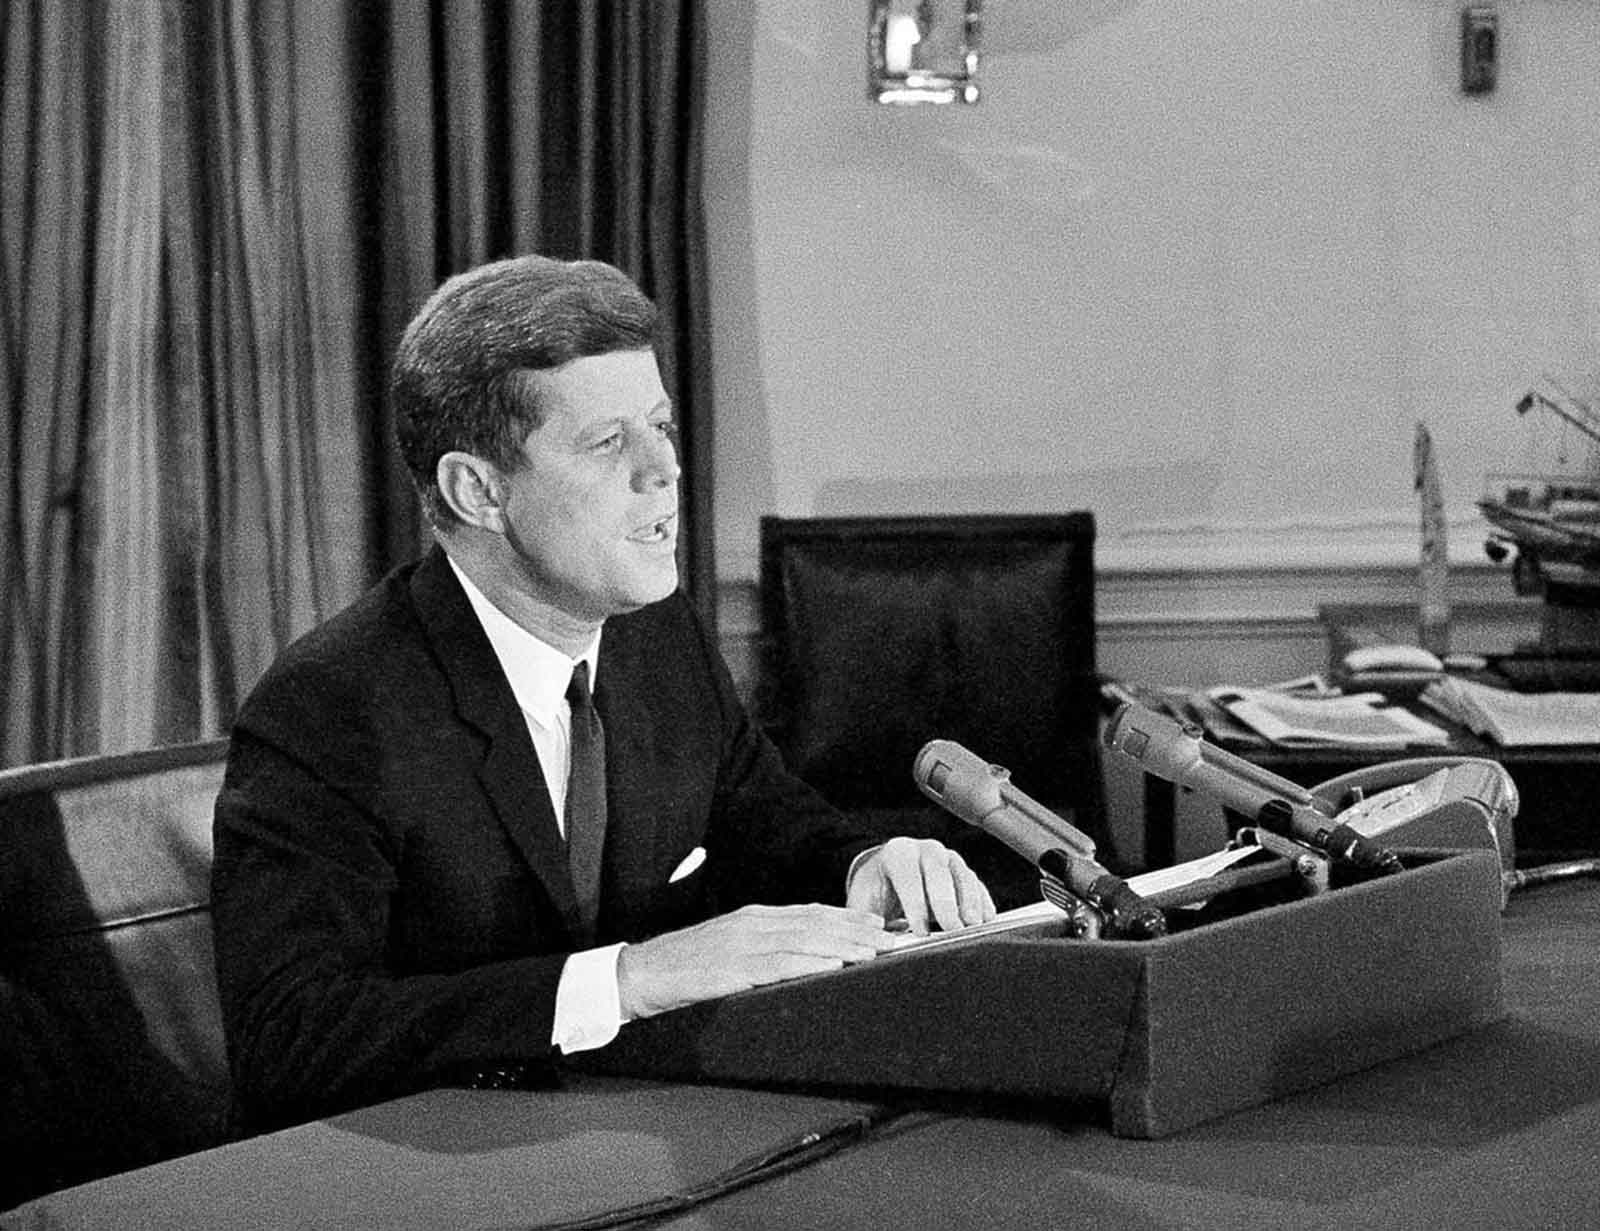 President John F. Kennedy tells the American people that the U.S. is setting up a naval blockade against Cuba, during a television and radio address, on October 22, 1962, from the White House. The president also said the U.S. would wreak